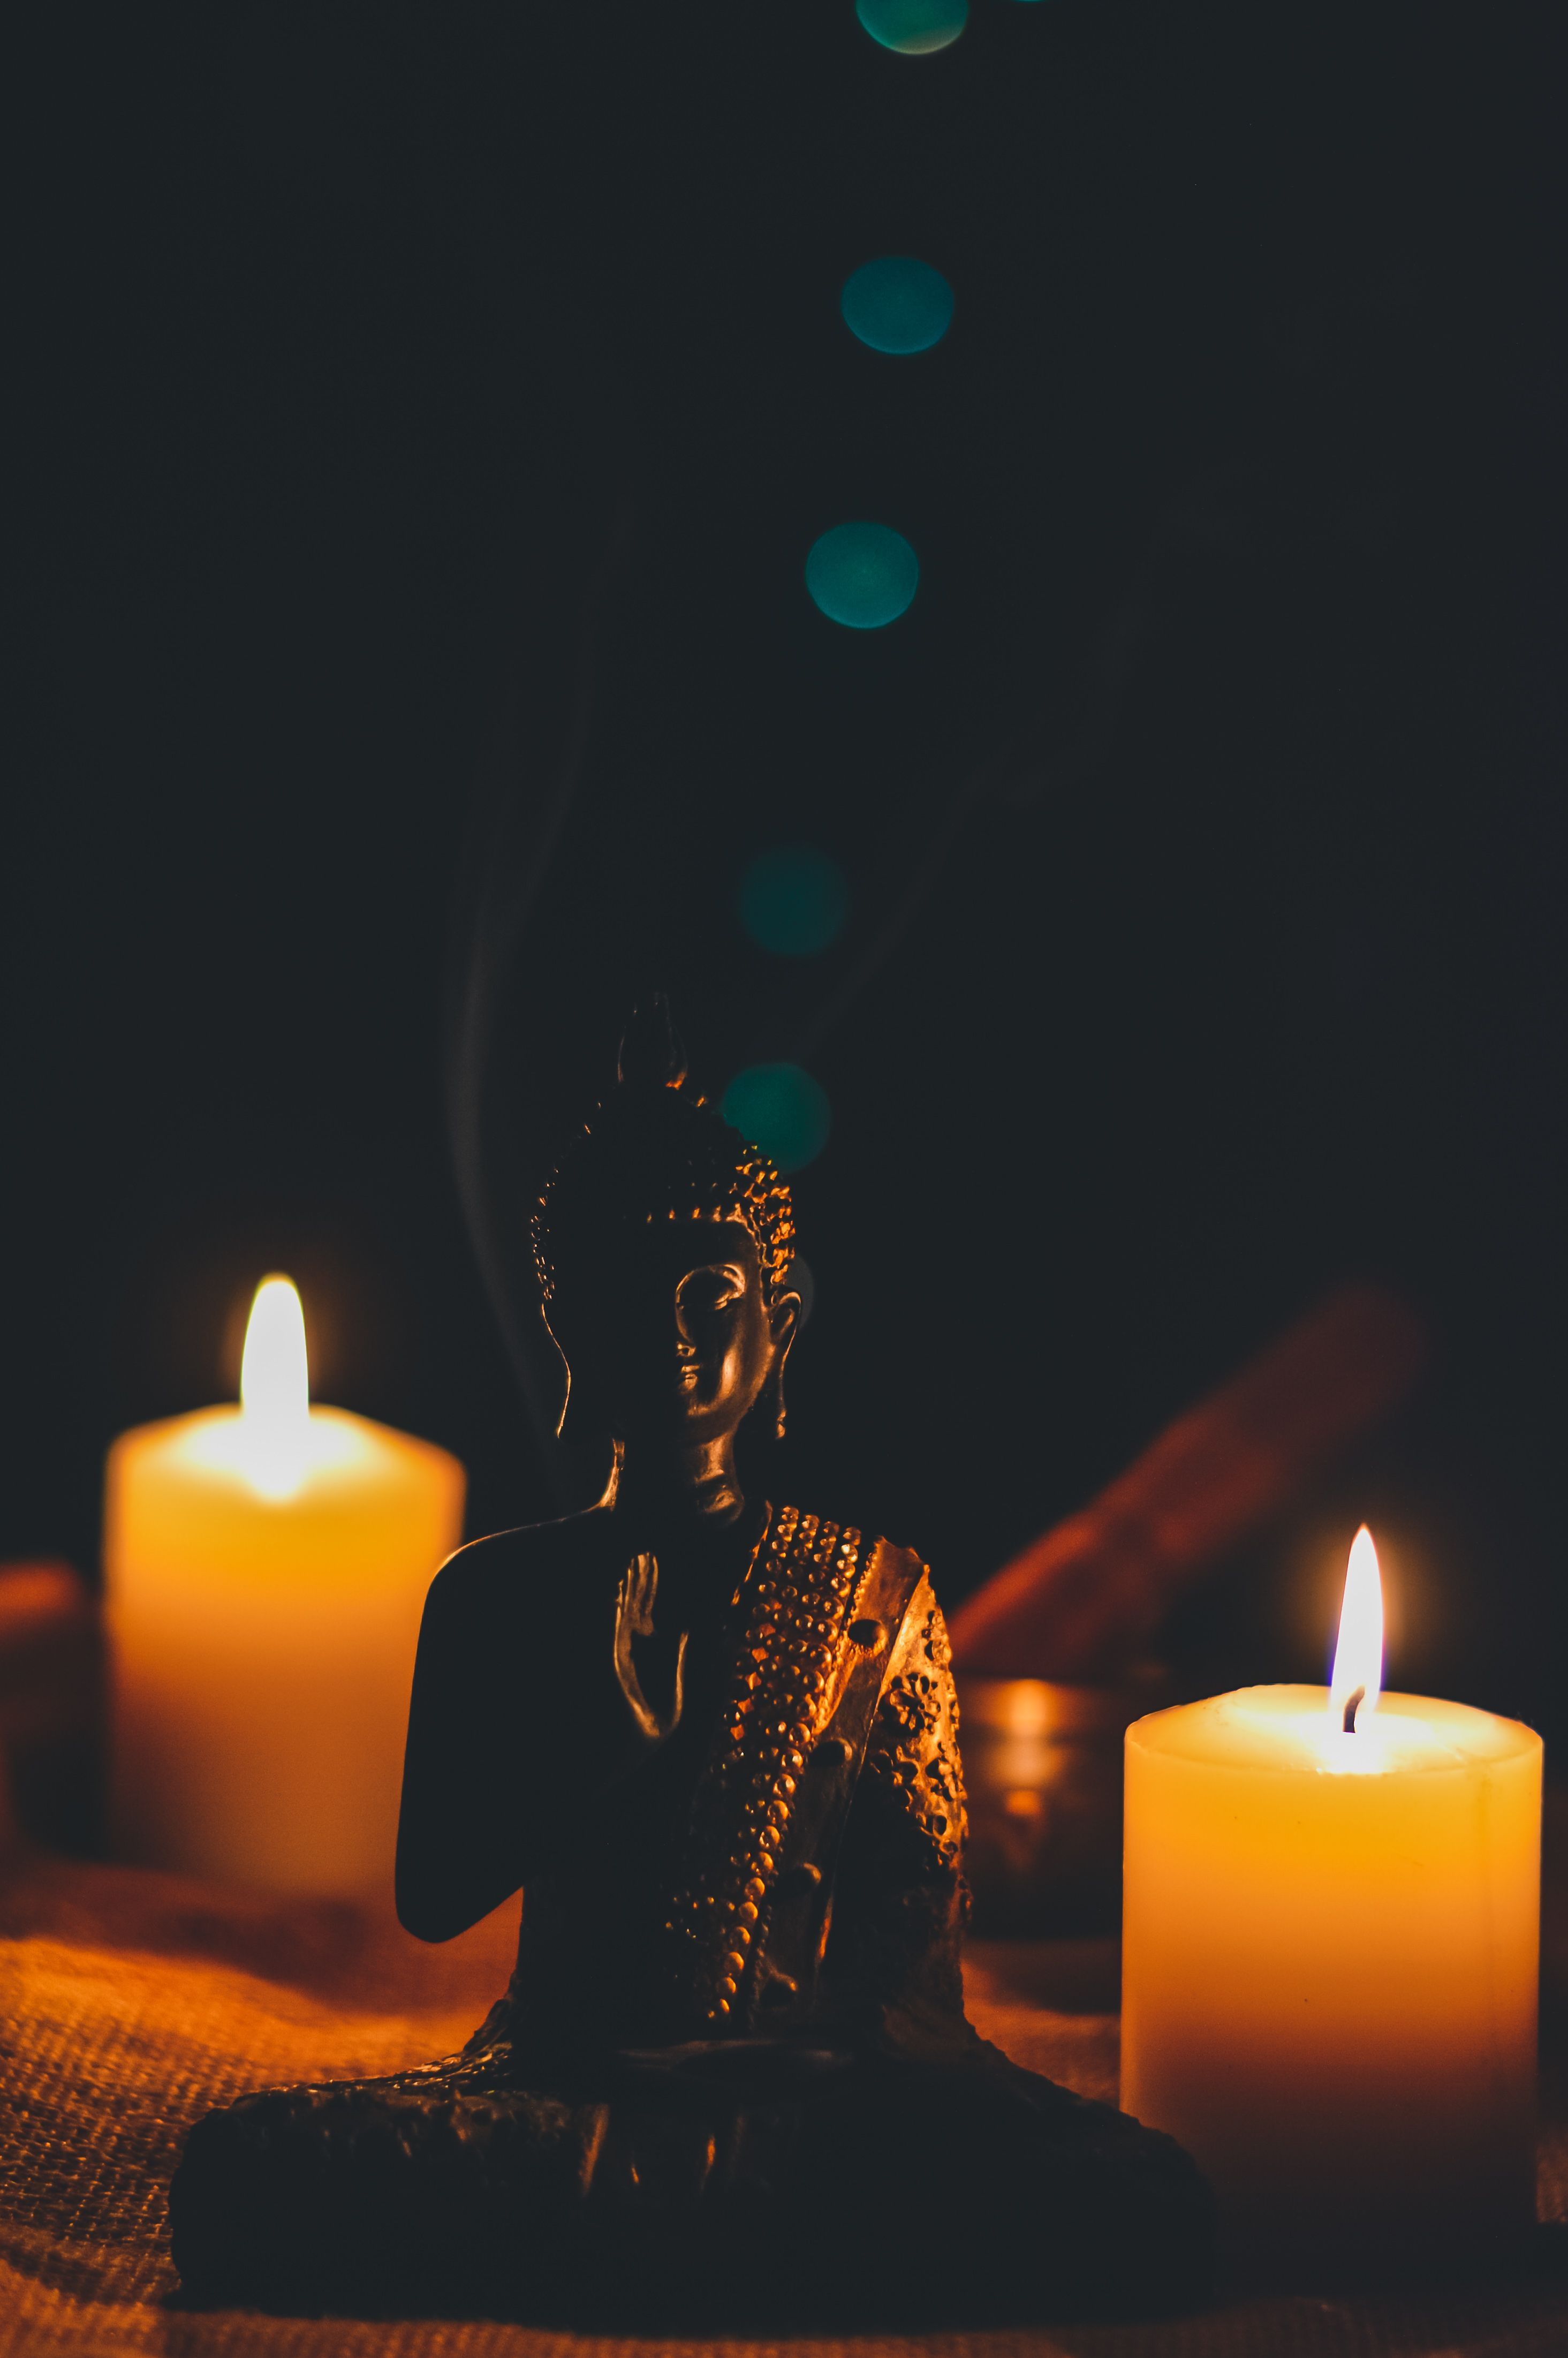 6 Shocking Yoga Portraits Sitting Buddha Beside Pillar Candles #candle #fire #flame